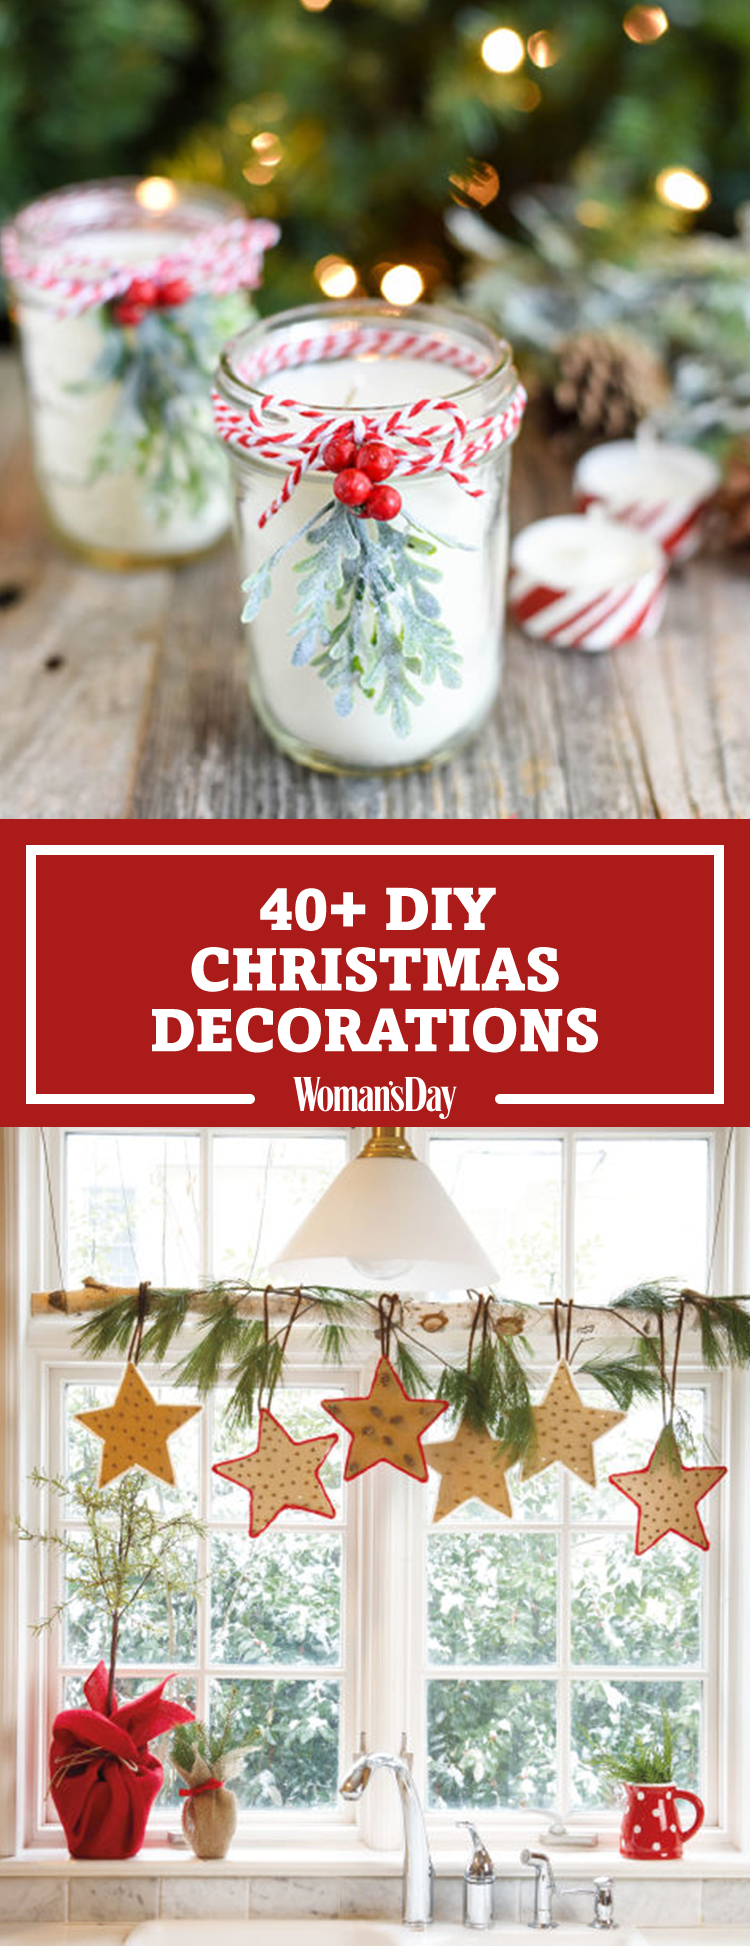 47 Easy Diy Christmas Decorations Homemade Ideas For: christmas decorating diy